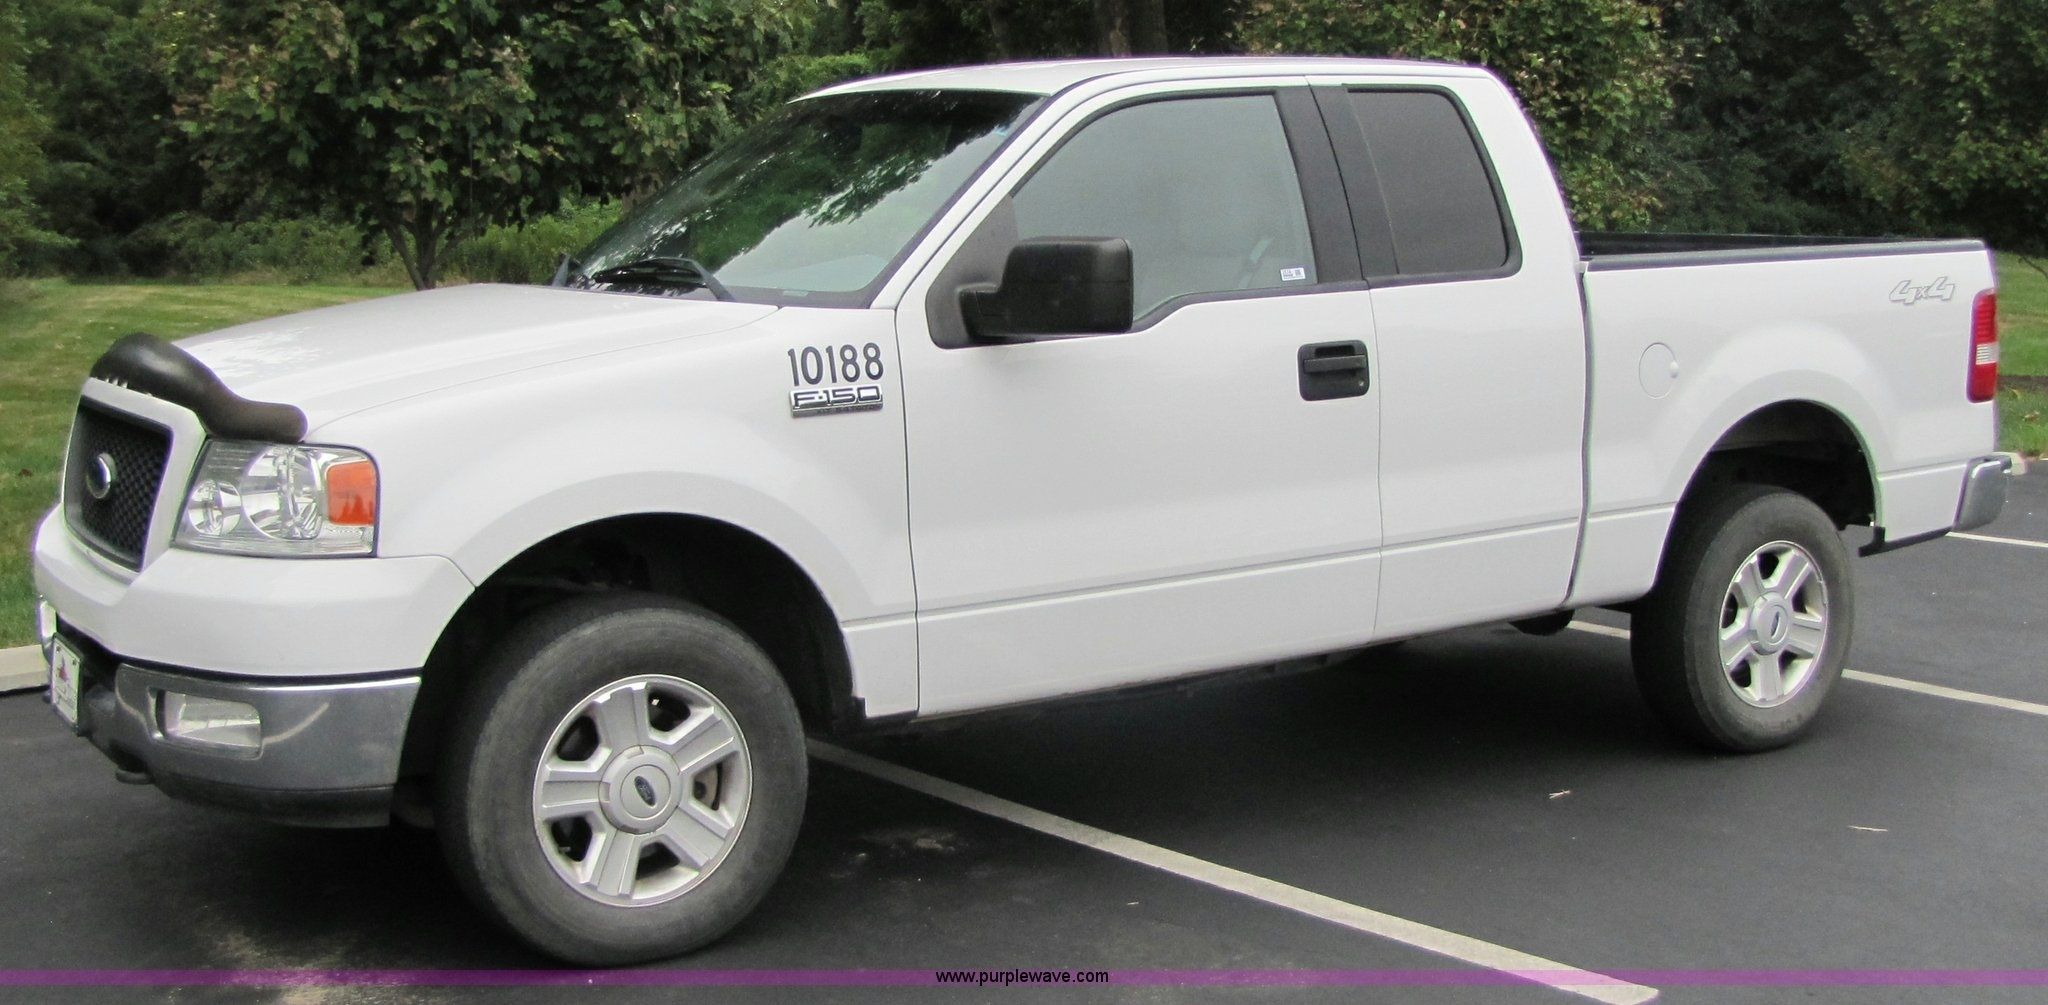 Best Of 2004 Ford F150 Extended Cab 2004 Ford F150 Ford F150 Extended Cab